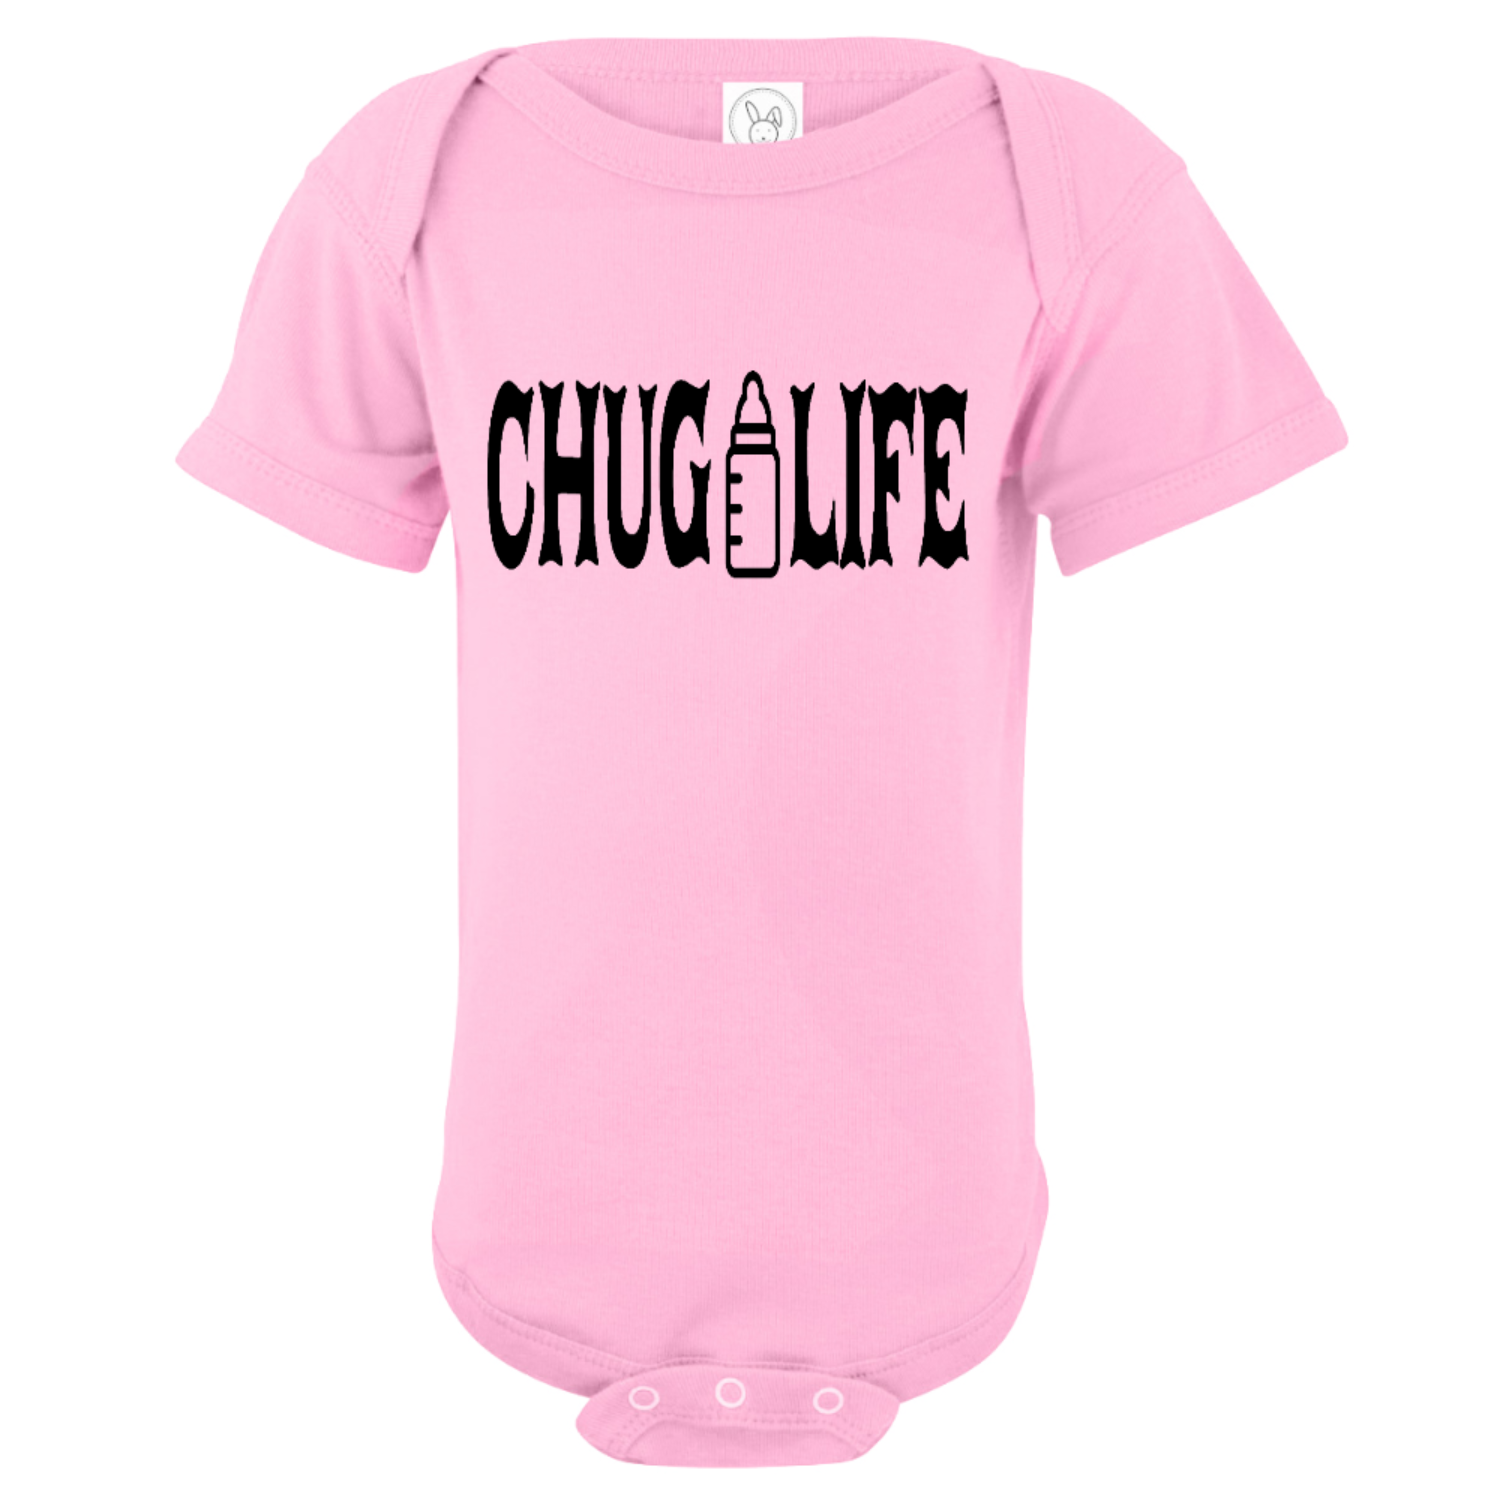 Chug Life Bottle Baby Bodysuit Light Pink